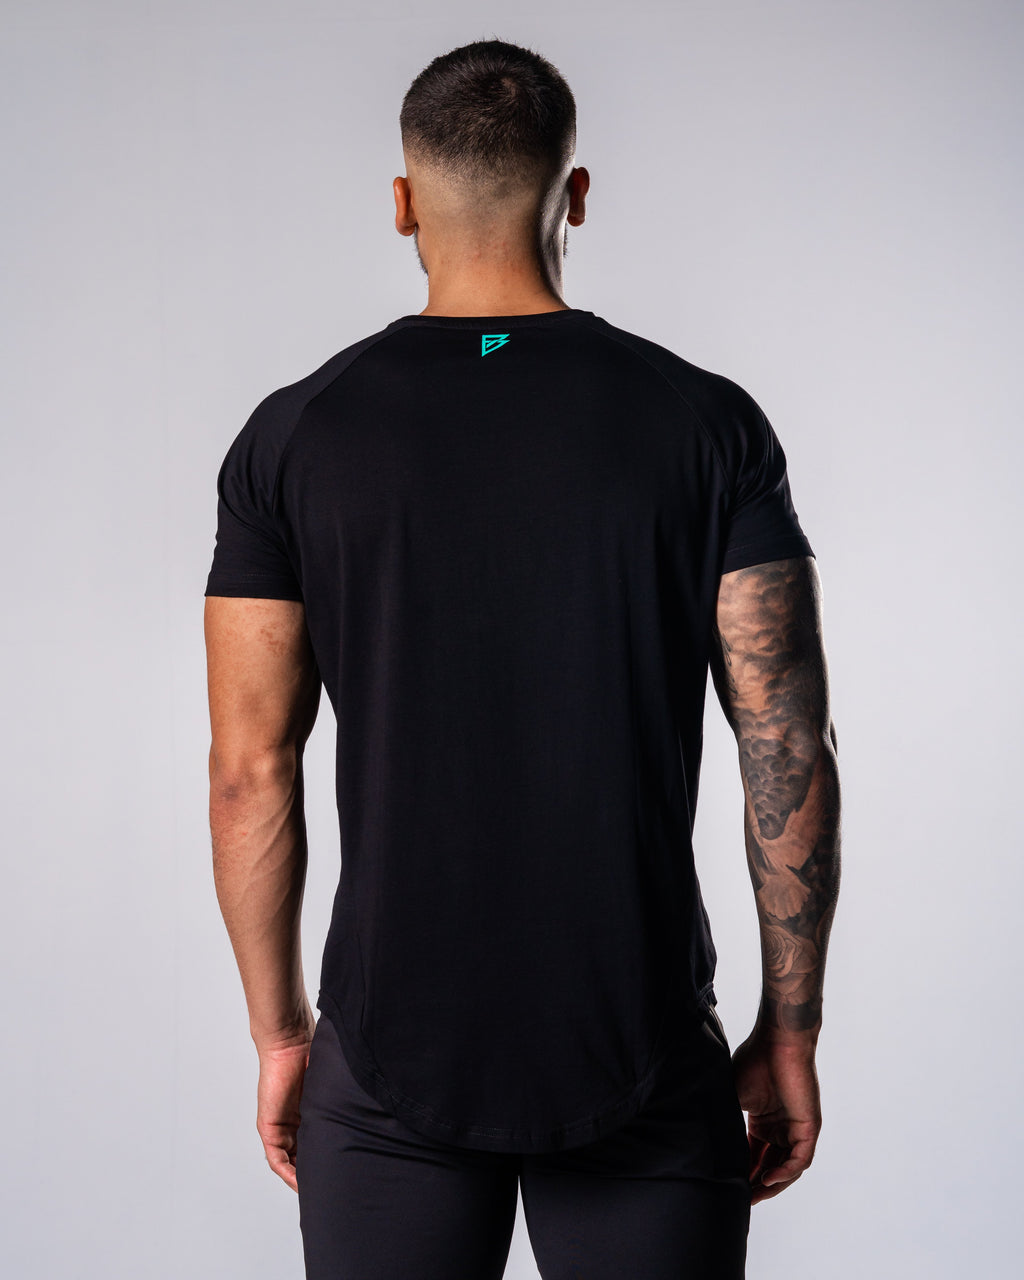 Flagship Performance Tee - Black - FIO Athletics